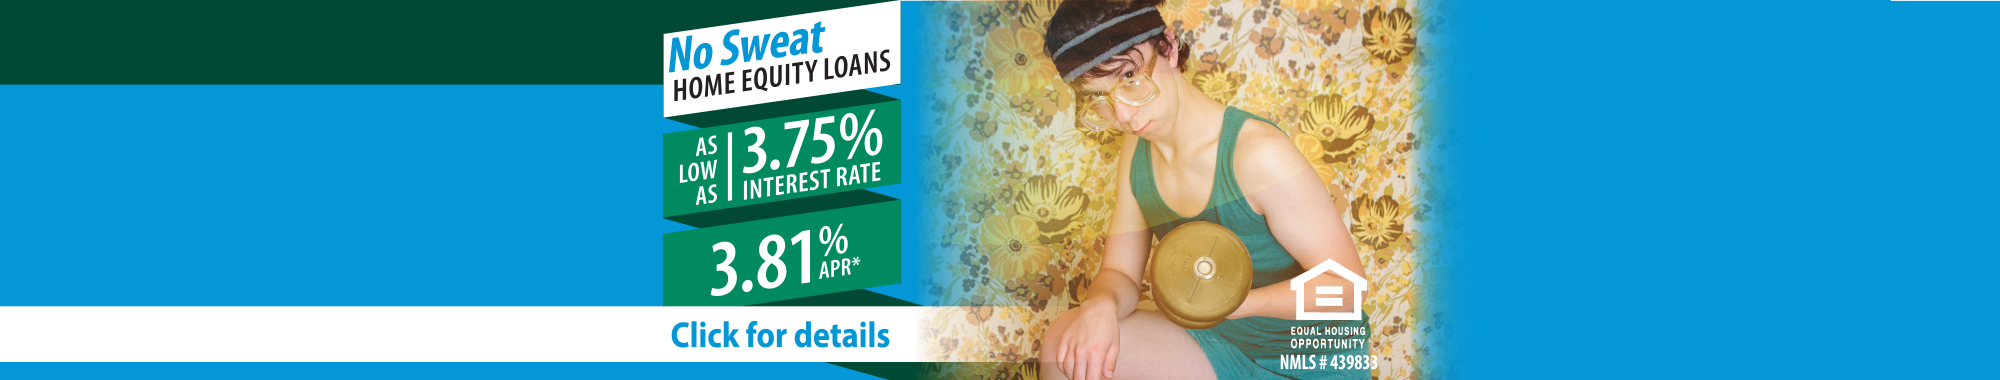 No Sweat HOME EQUITY LOANS - Click for details!